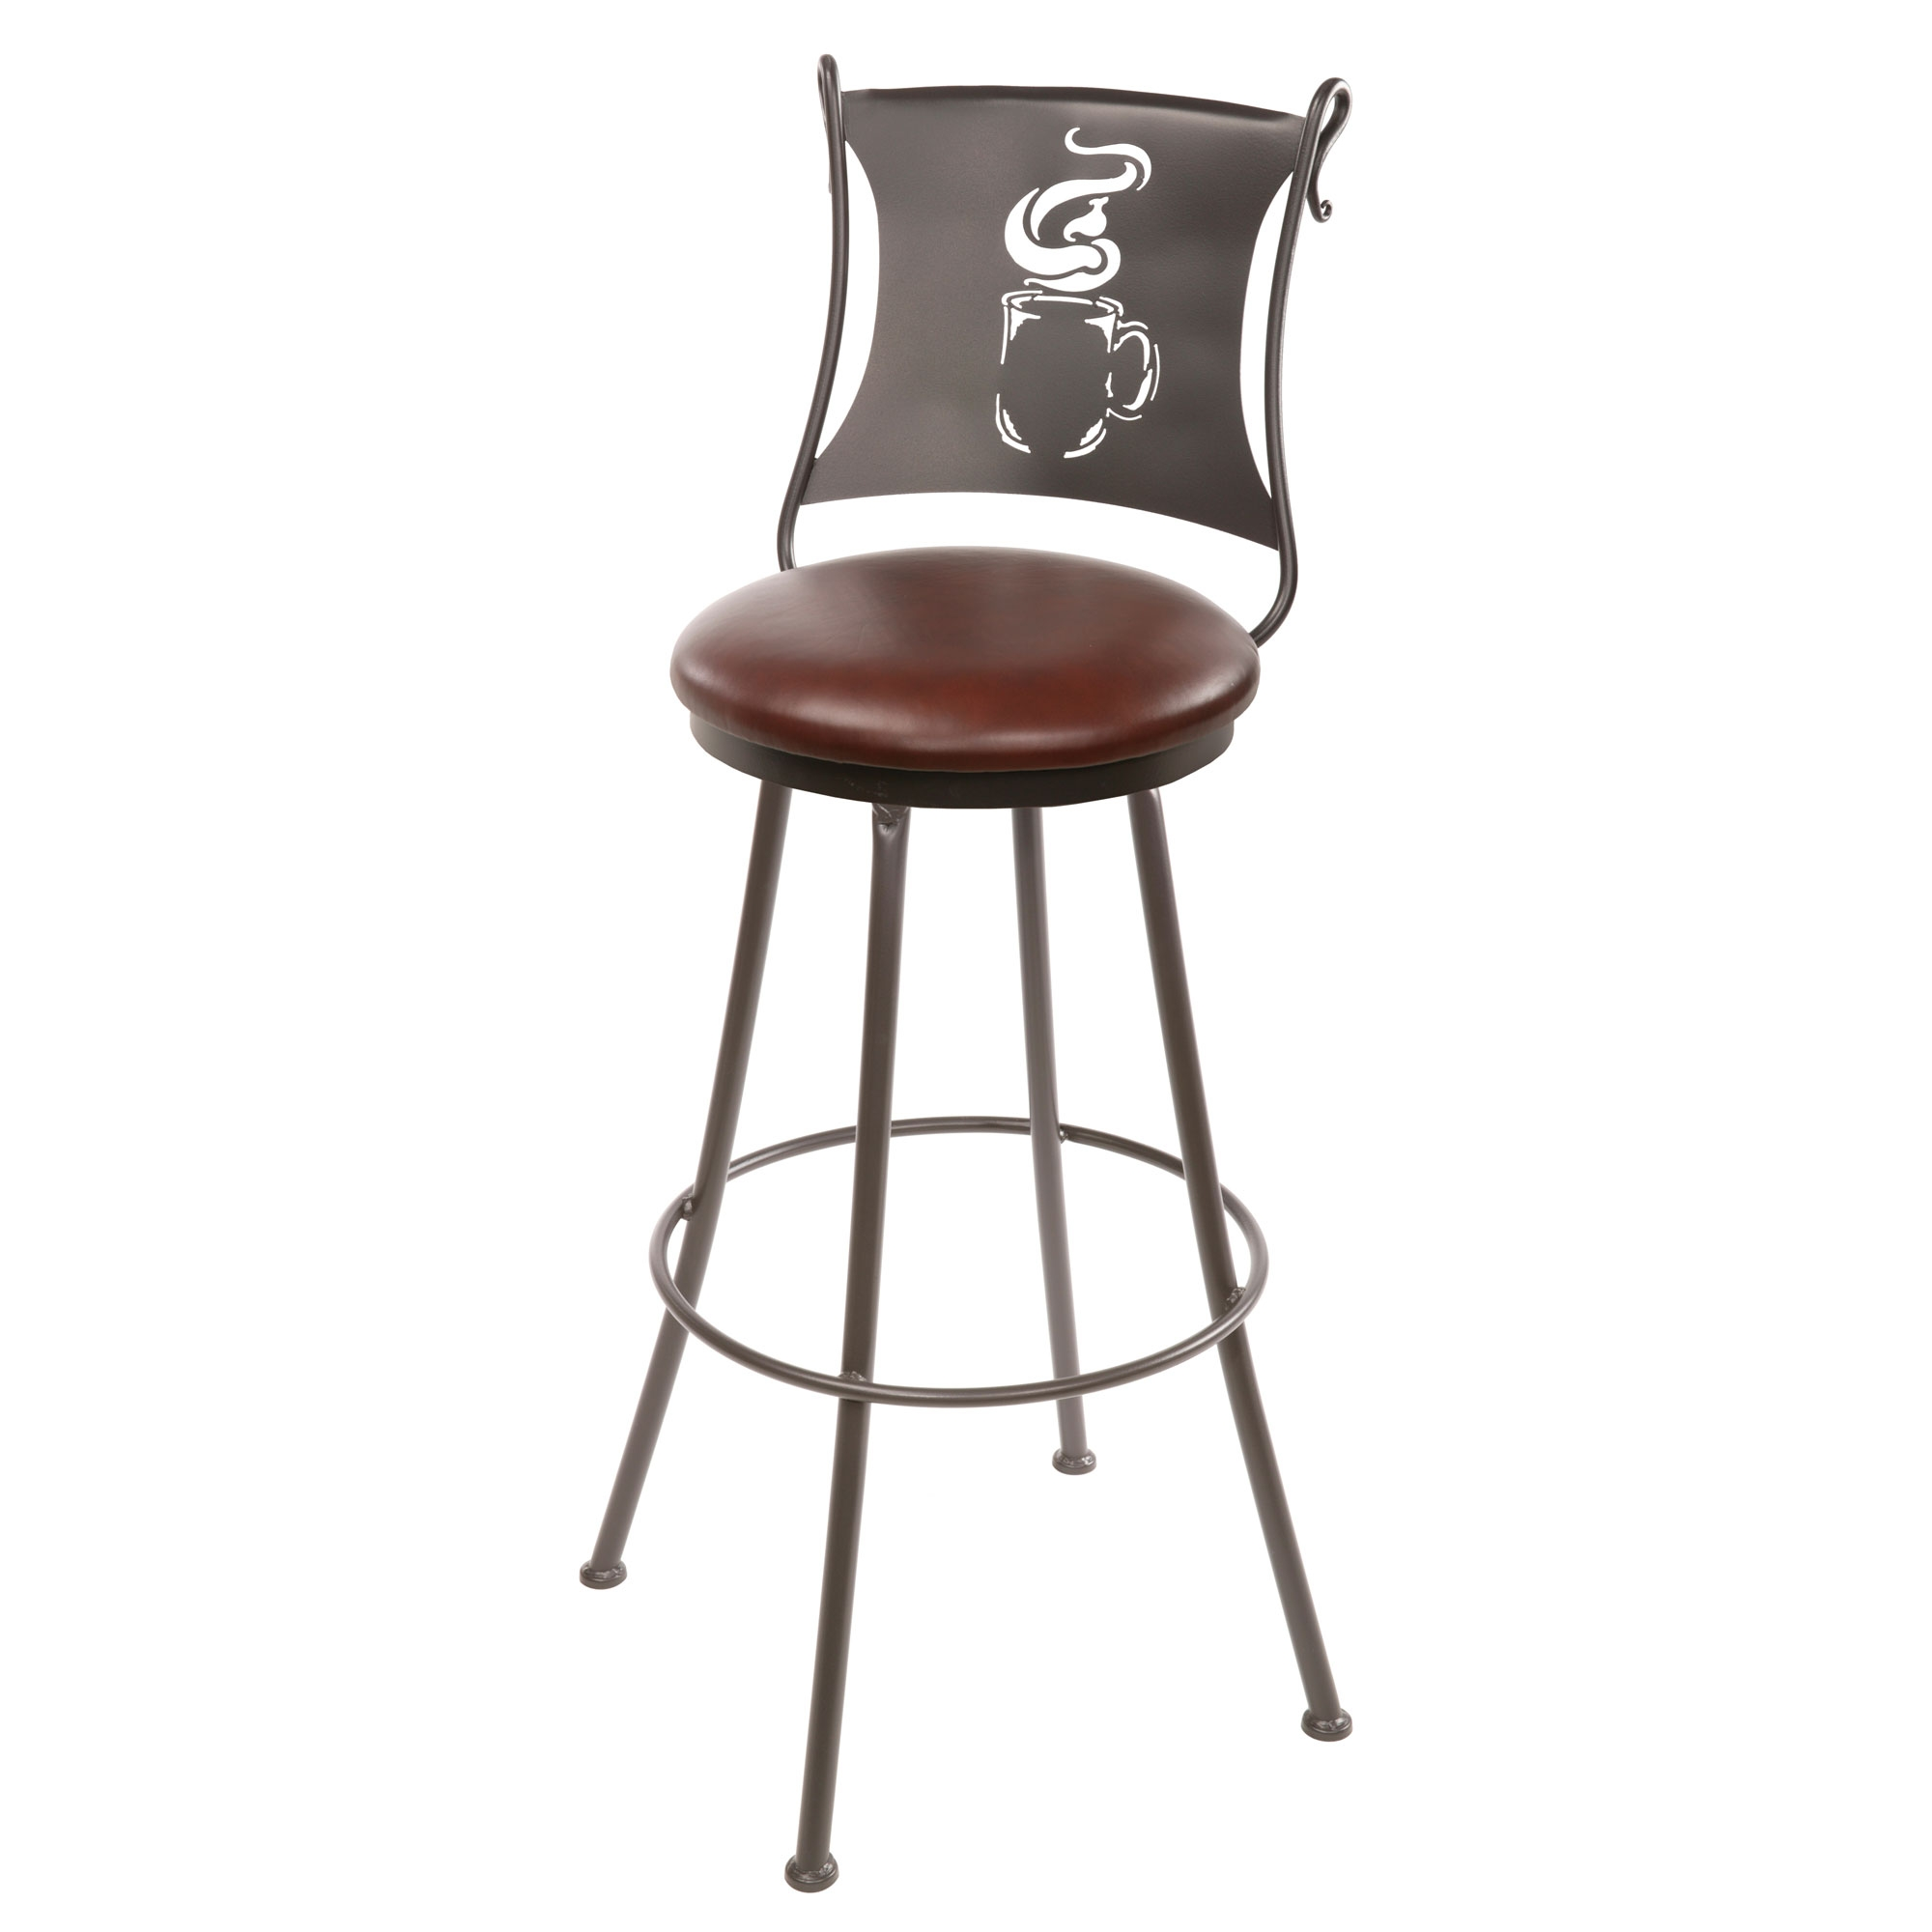 Pictured here is the Latte Counter Stool that has a in seat height and